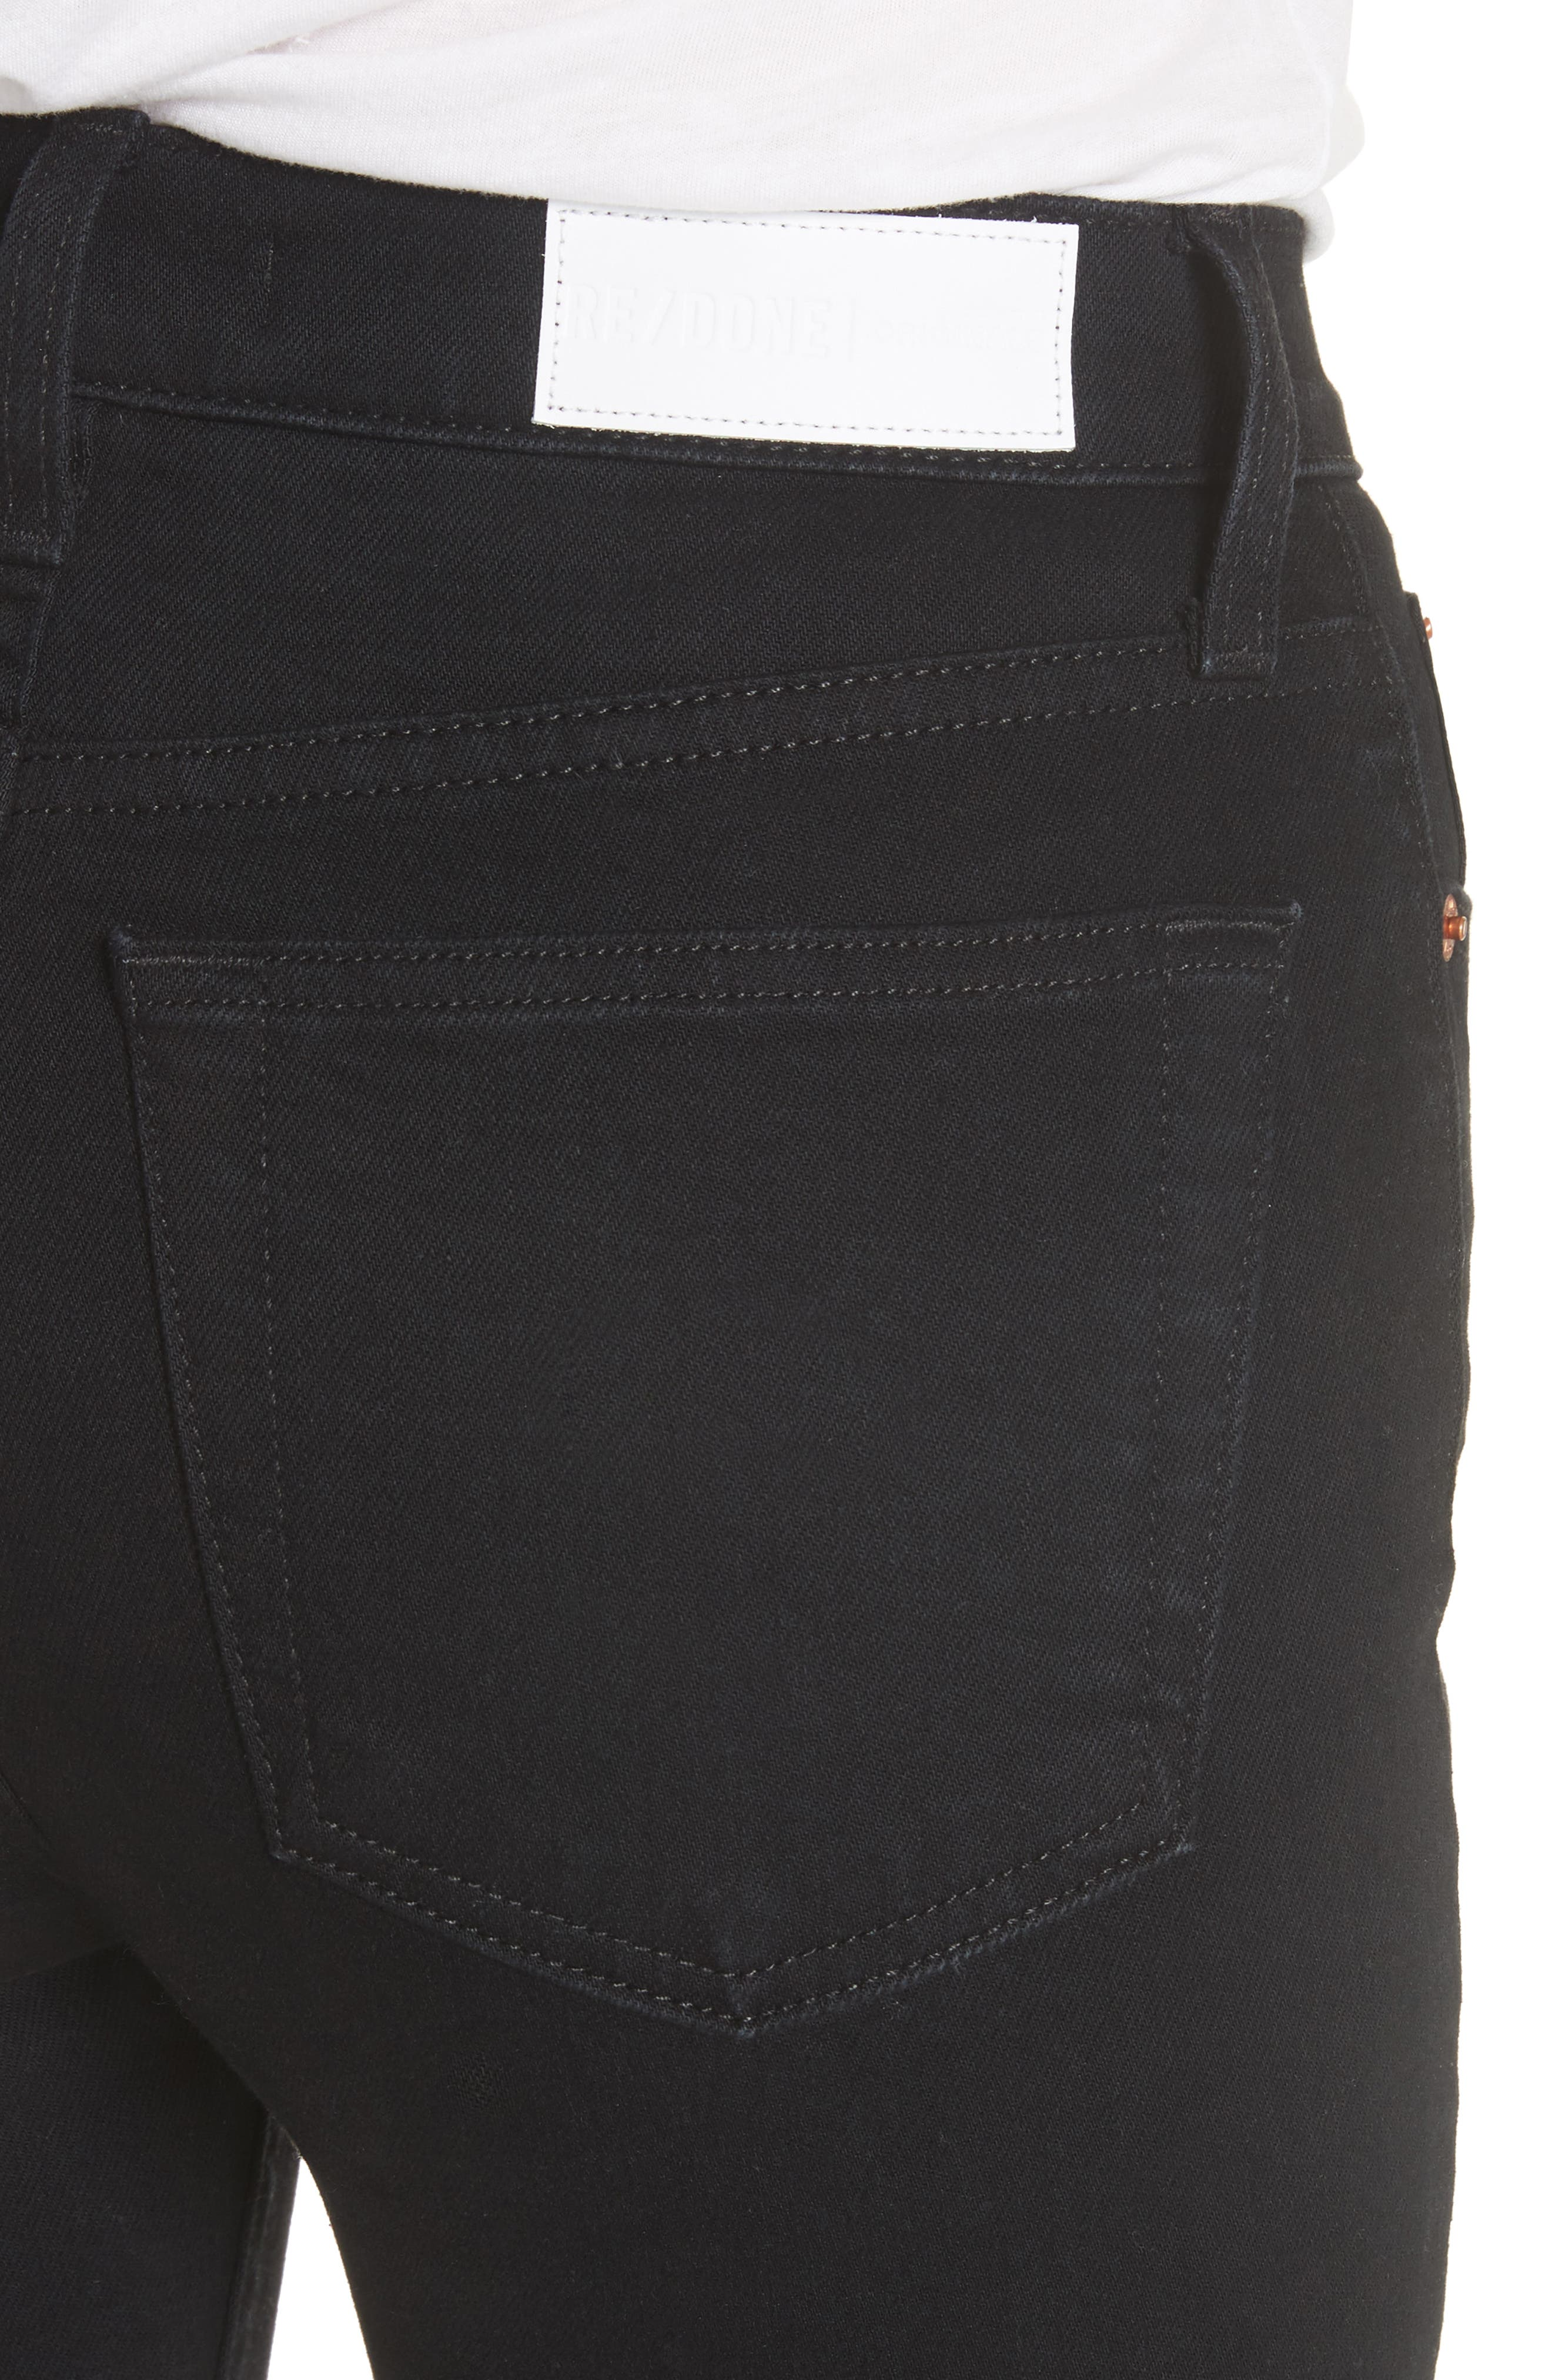 High Waist Stretch Ankle Jeans,                             Alternate thumbnail 4, color,                             001